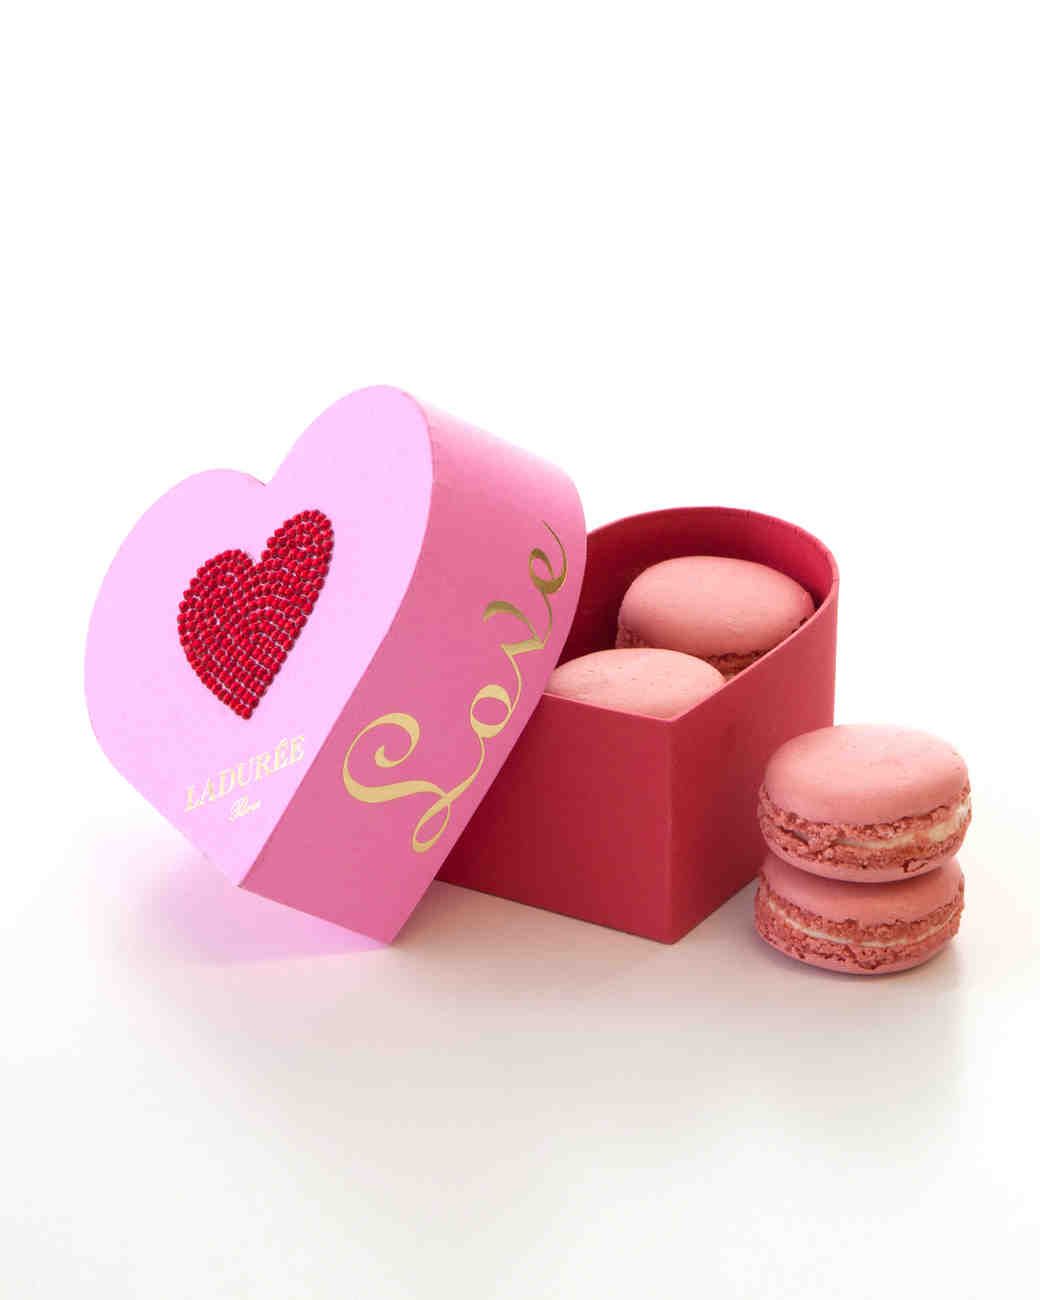 laduree gift box